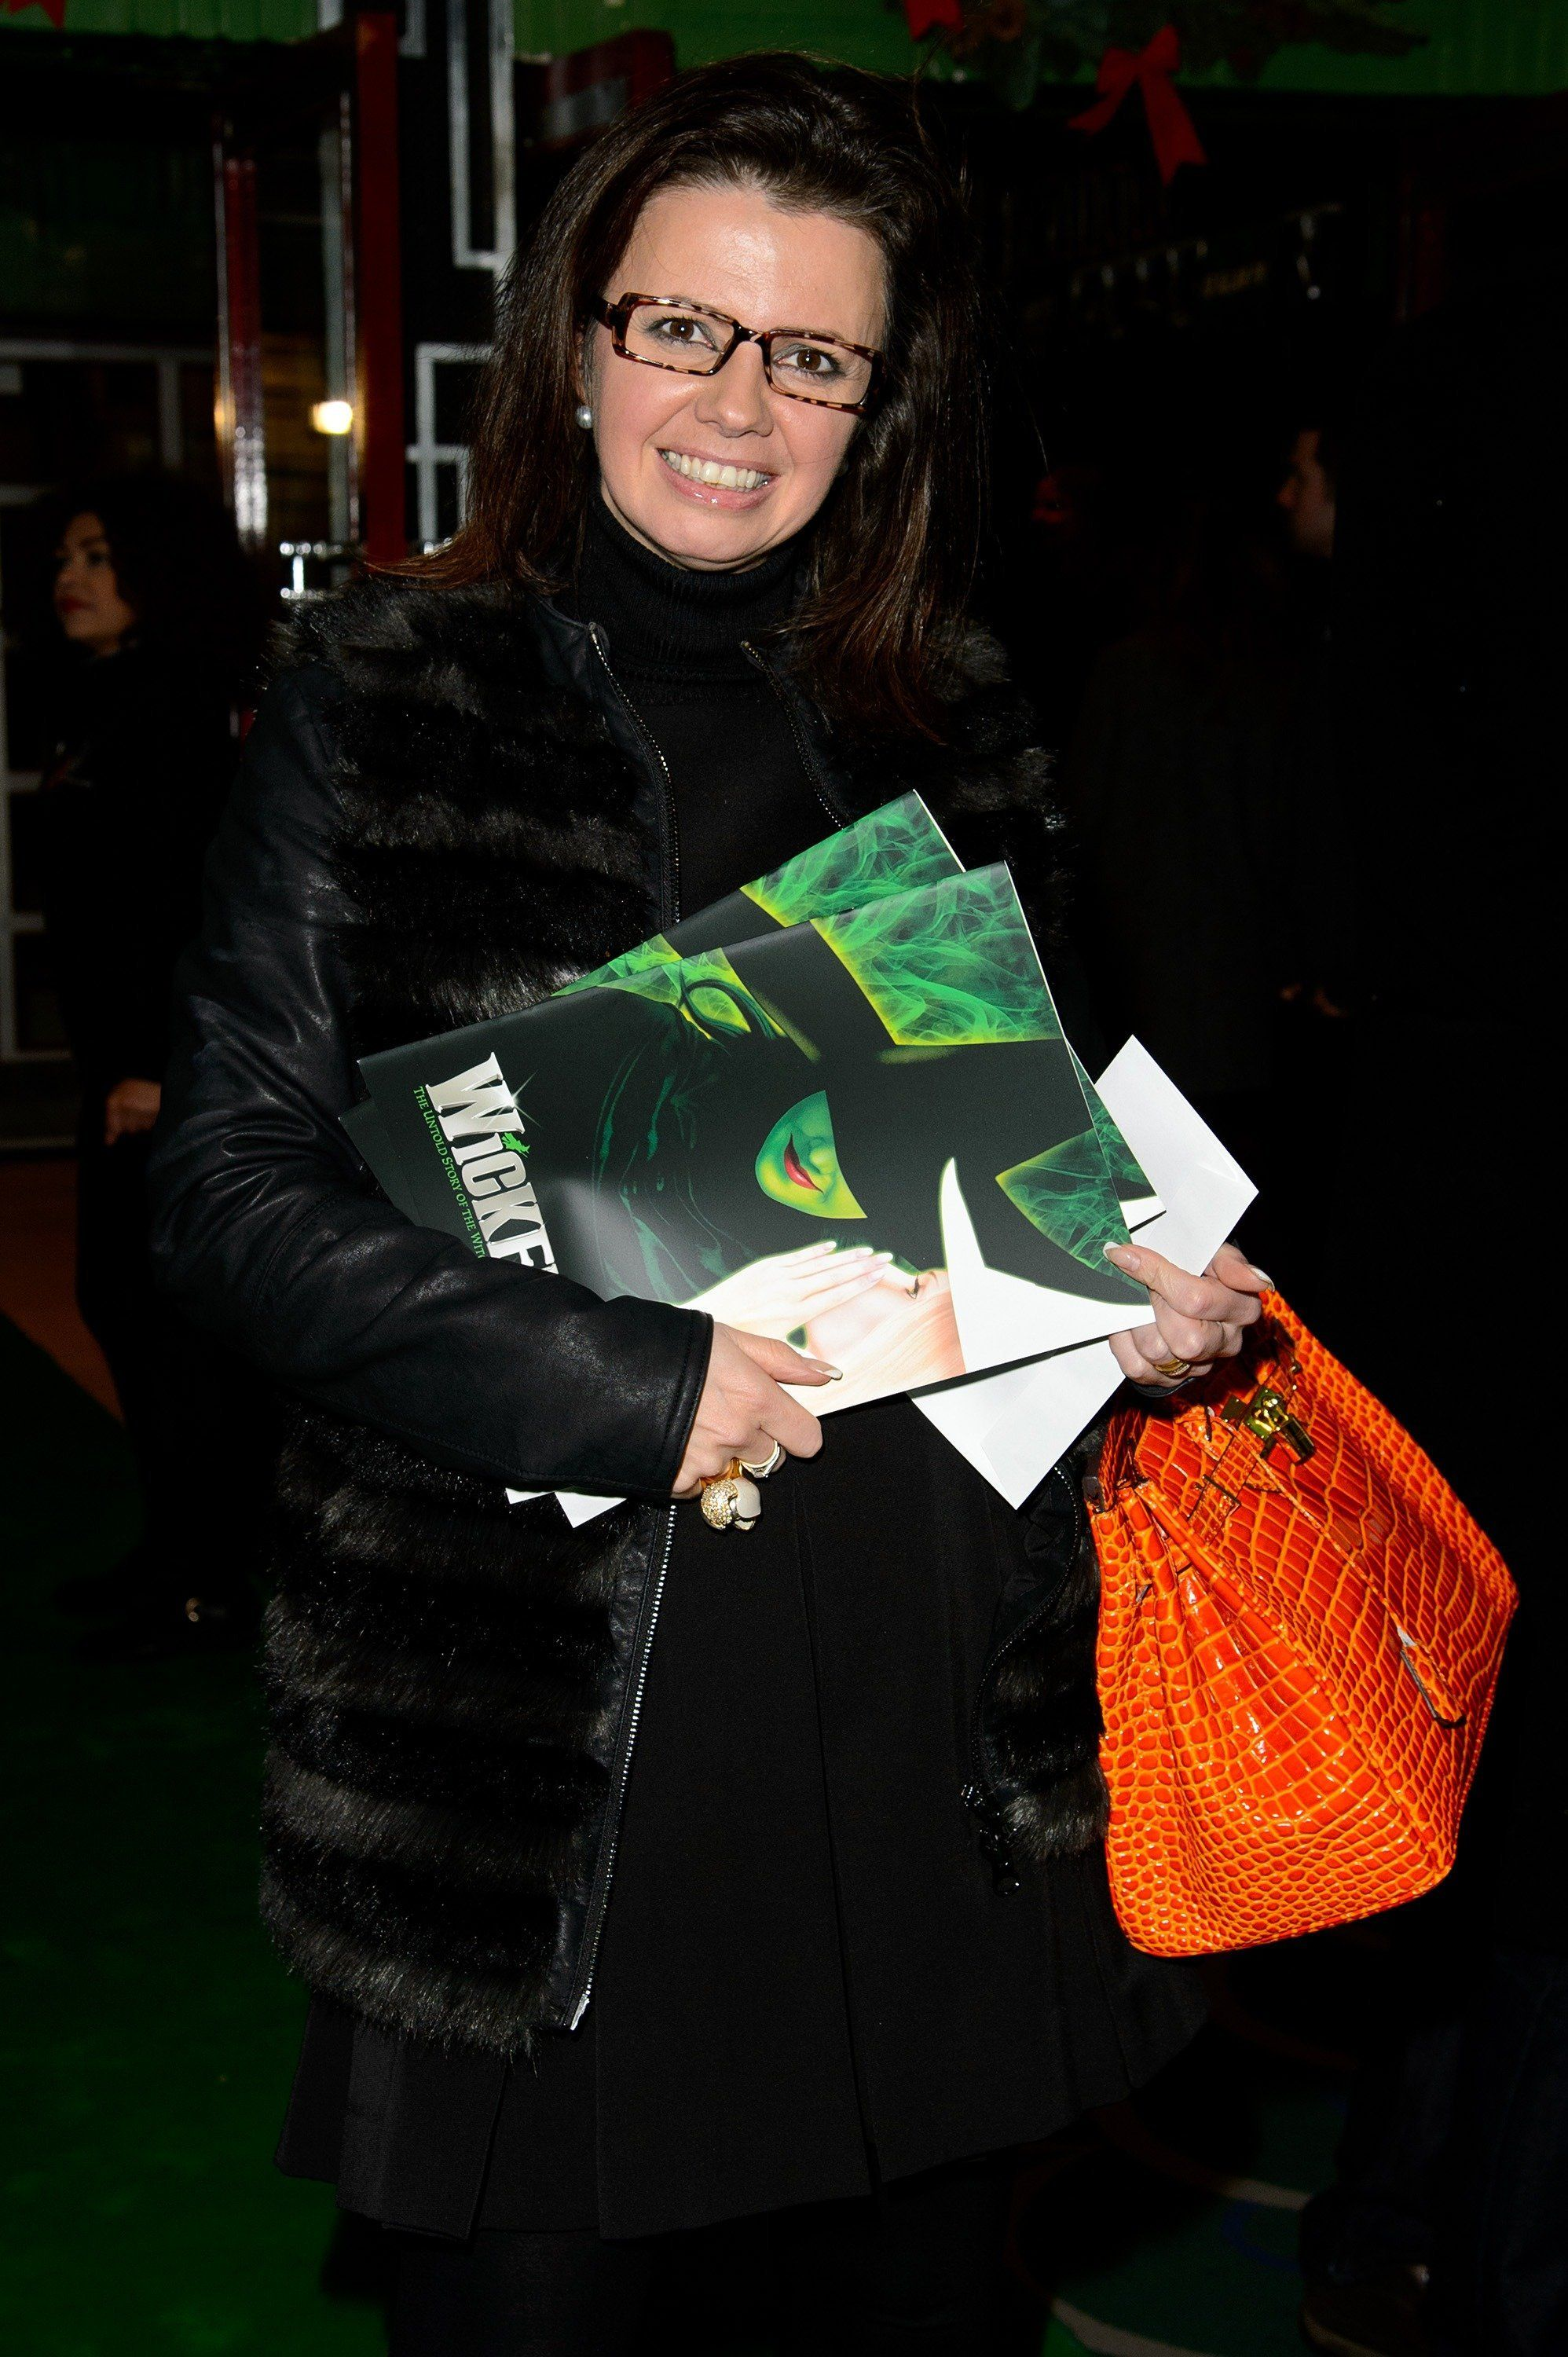 LONDON, ENGLAND - DECEMBER 19:  Karen Hardy attends the press night for 'Wicked' at Apollo Victoria Theatre on December 19, 2013 in London, England.  (Photo by Ben A. Pruchnie/Getty Images)